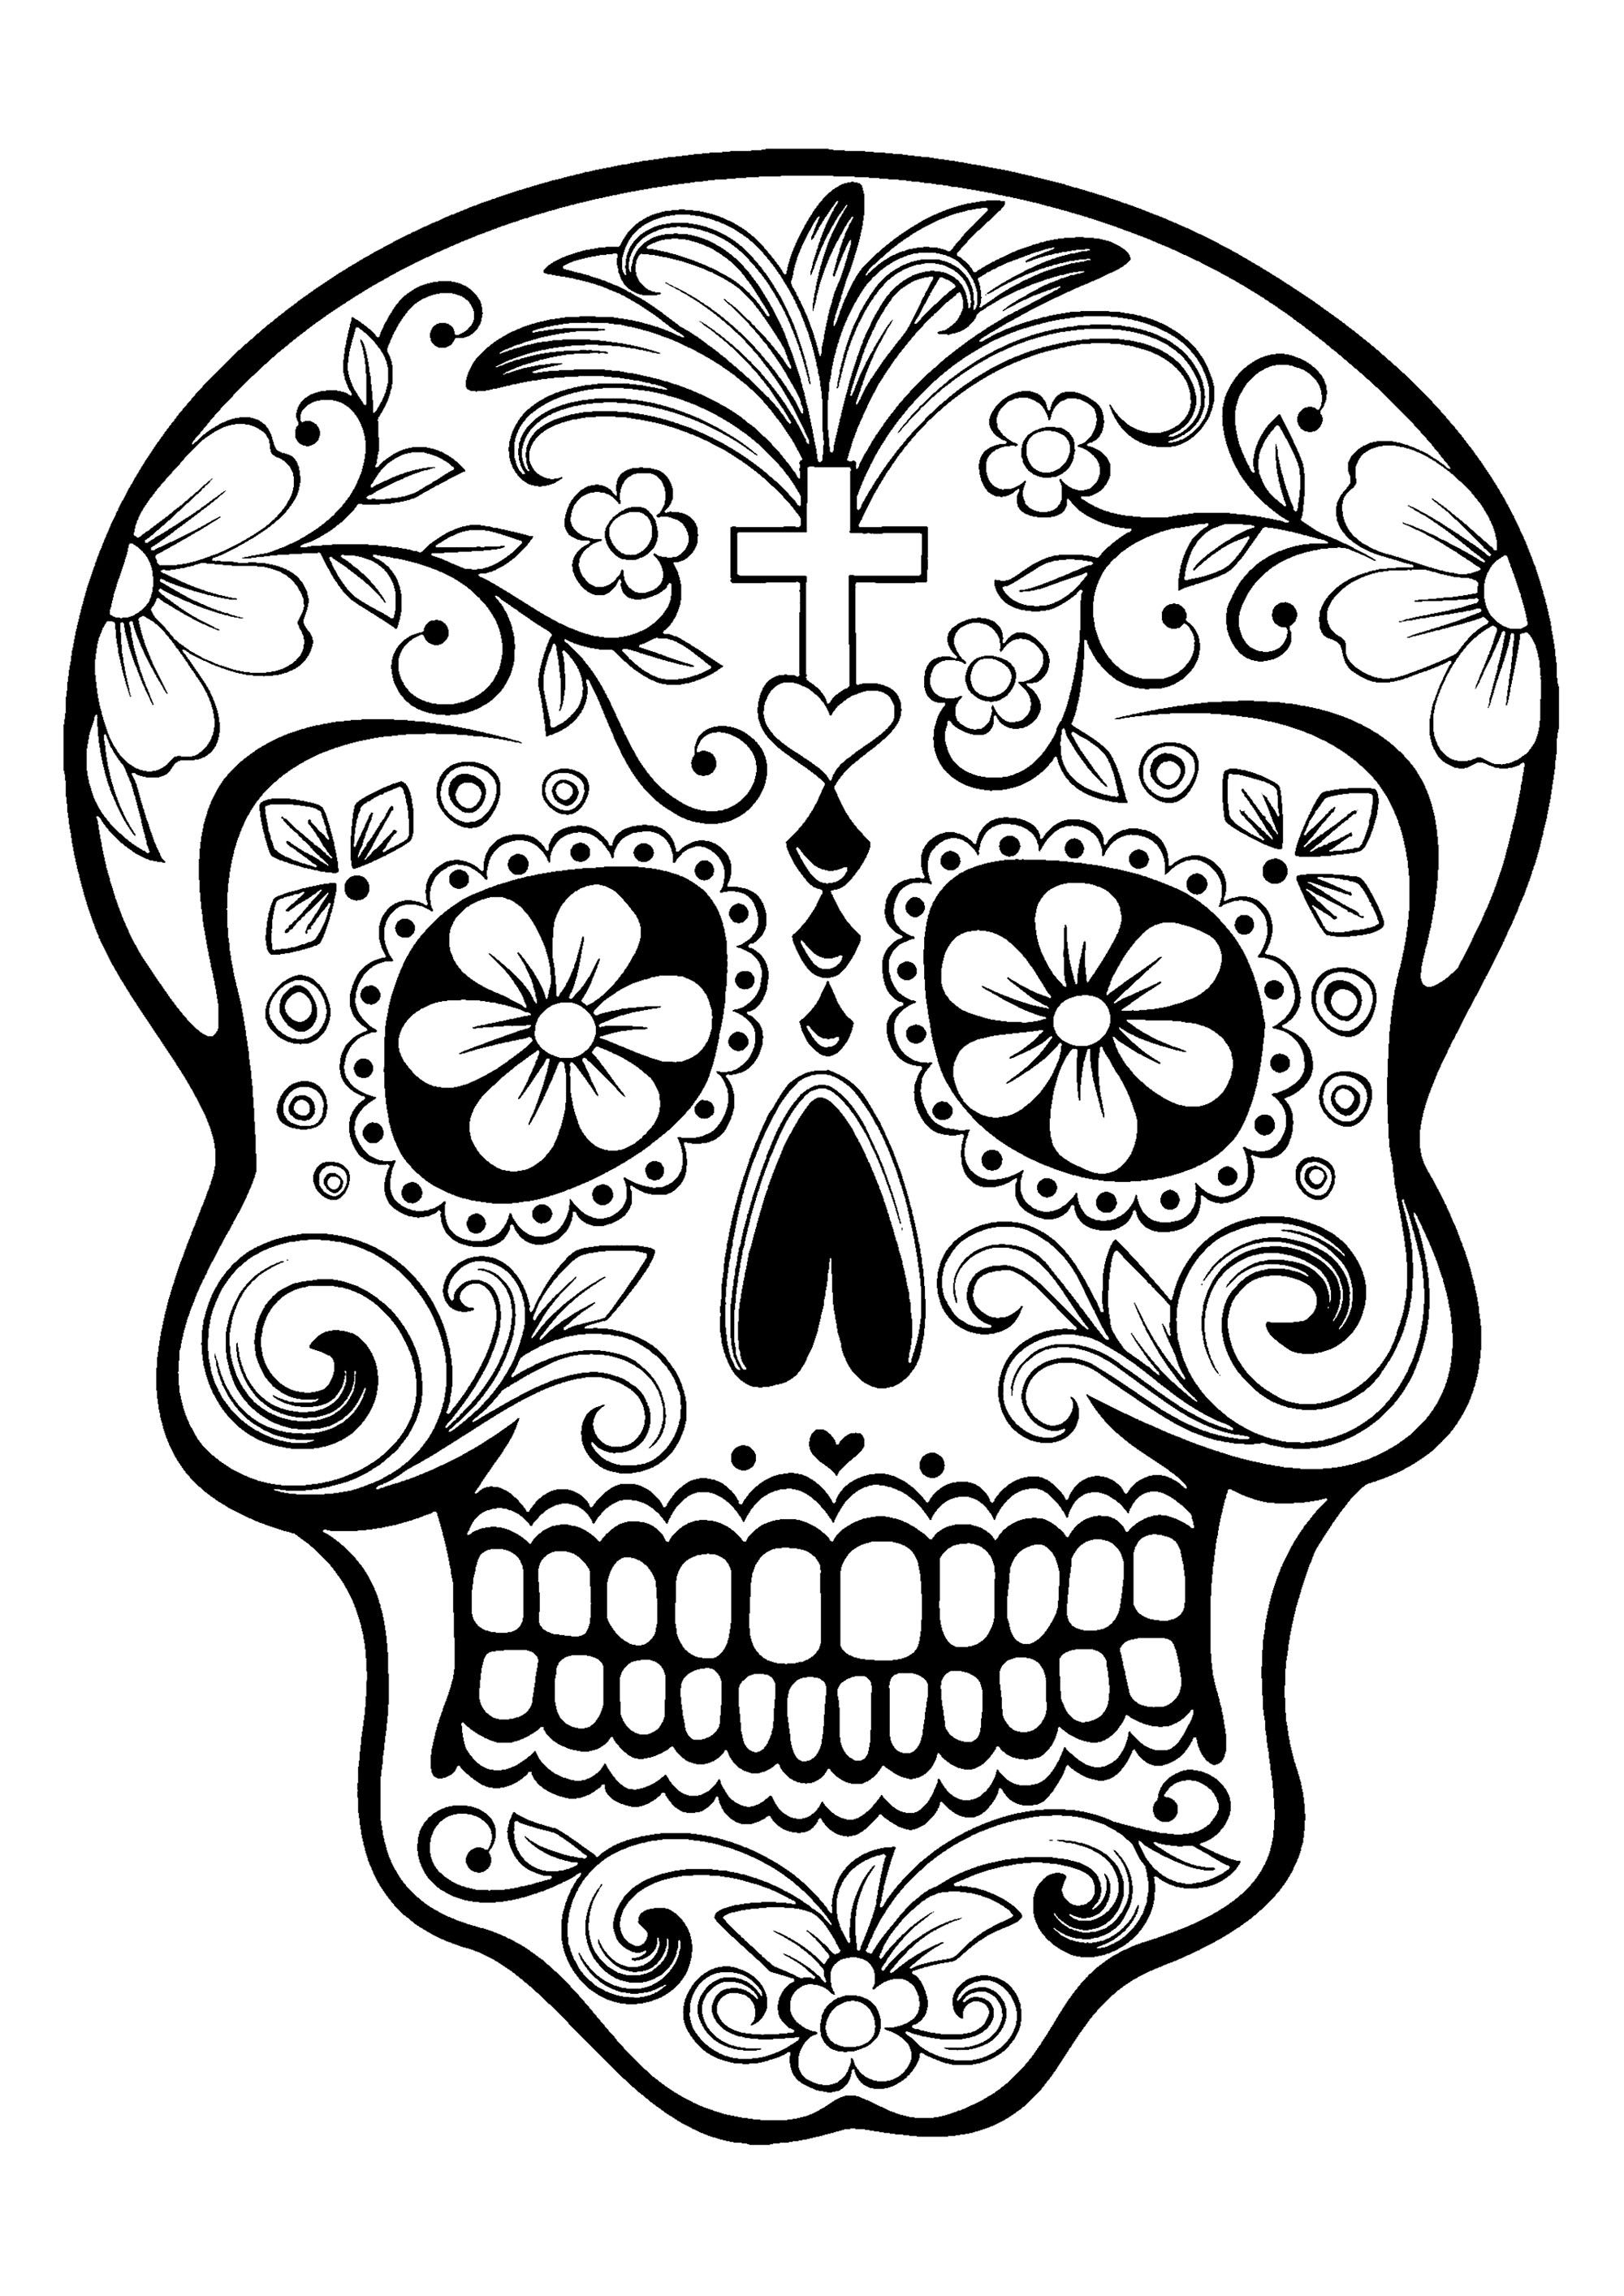 El Dia De Los Muertos 1 El Dia De Los Muertos Coloring Pages For